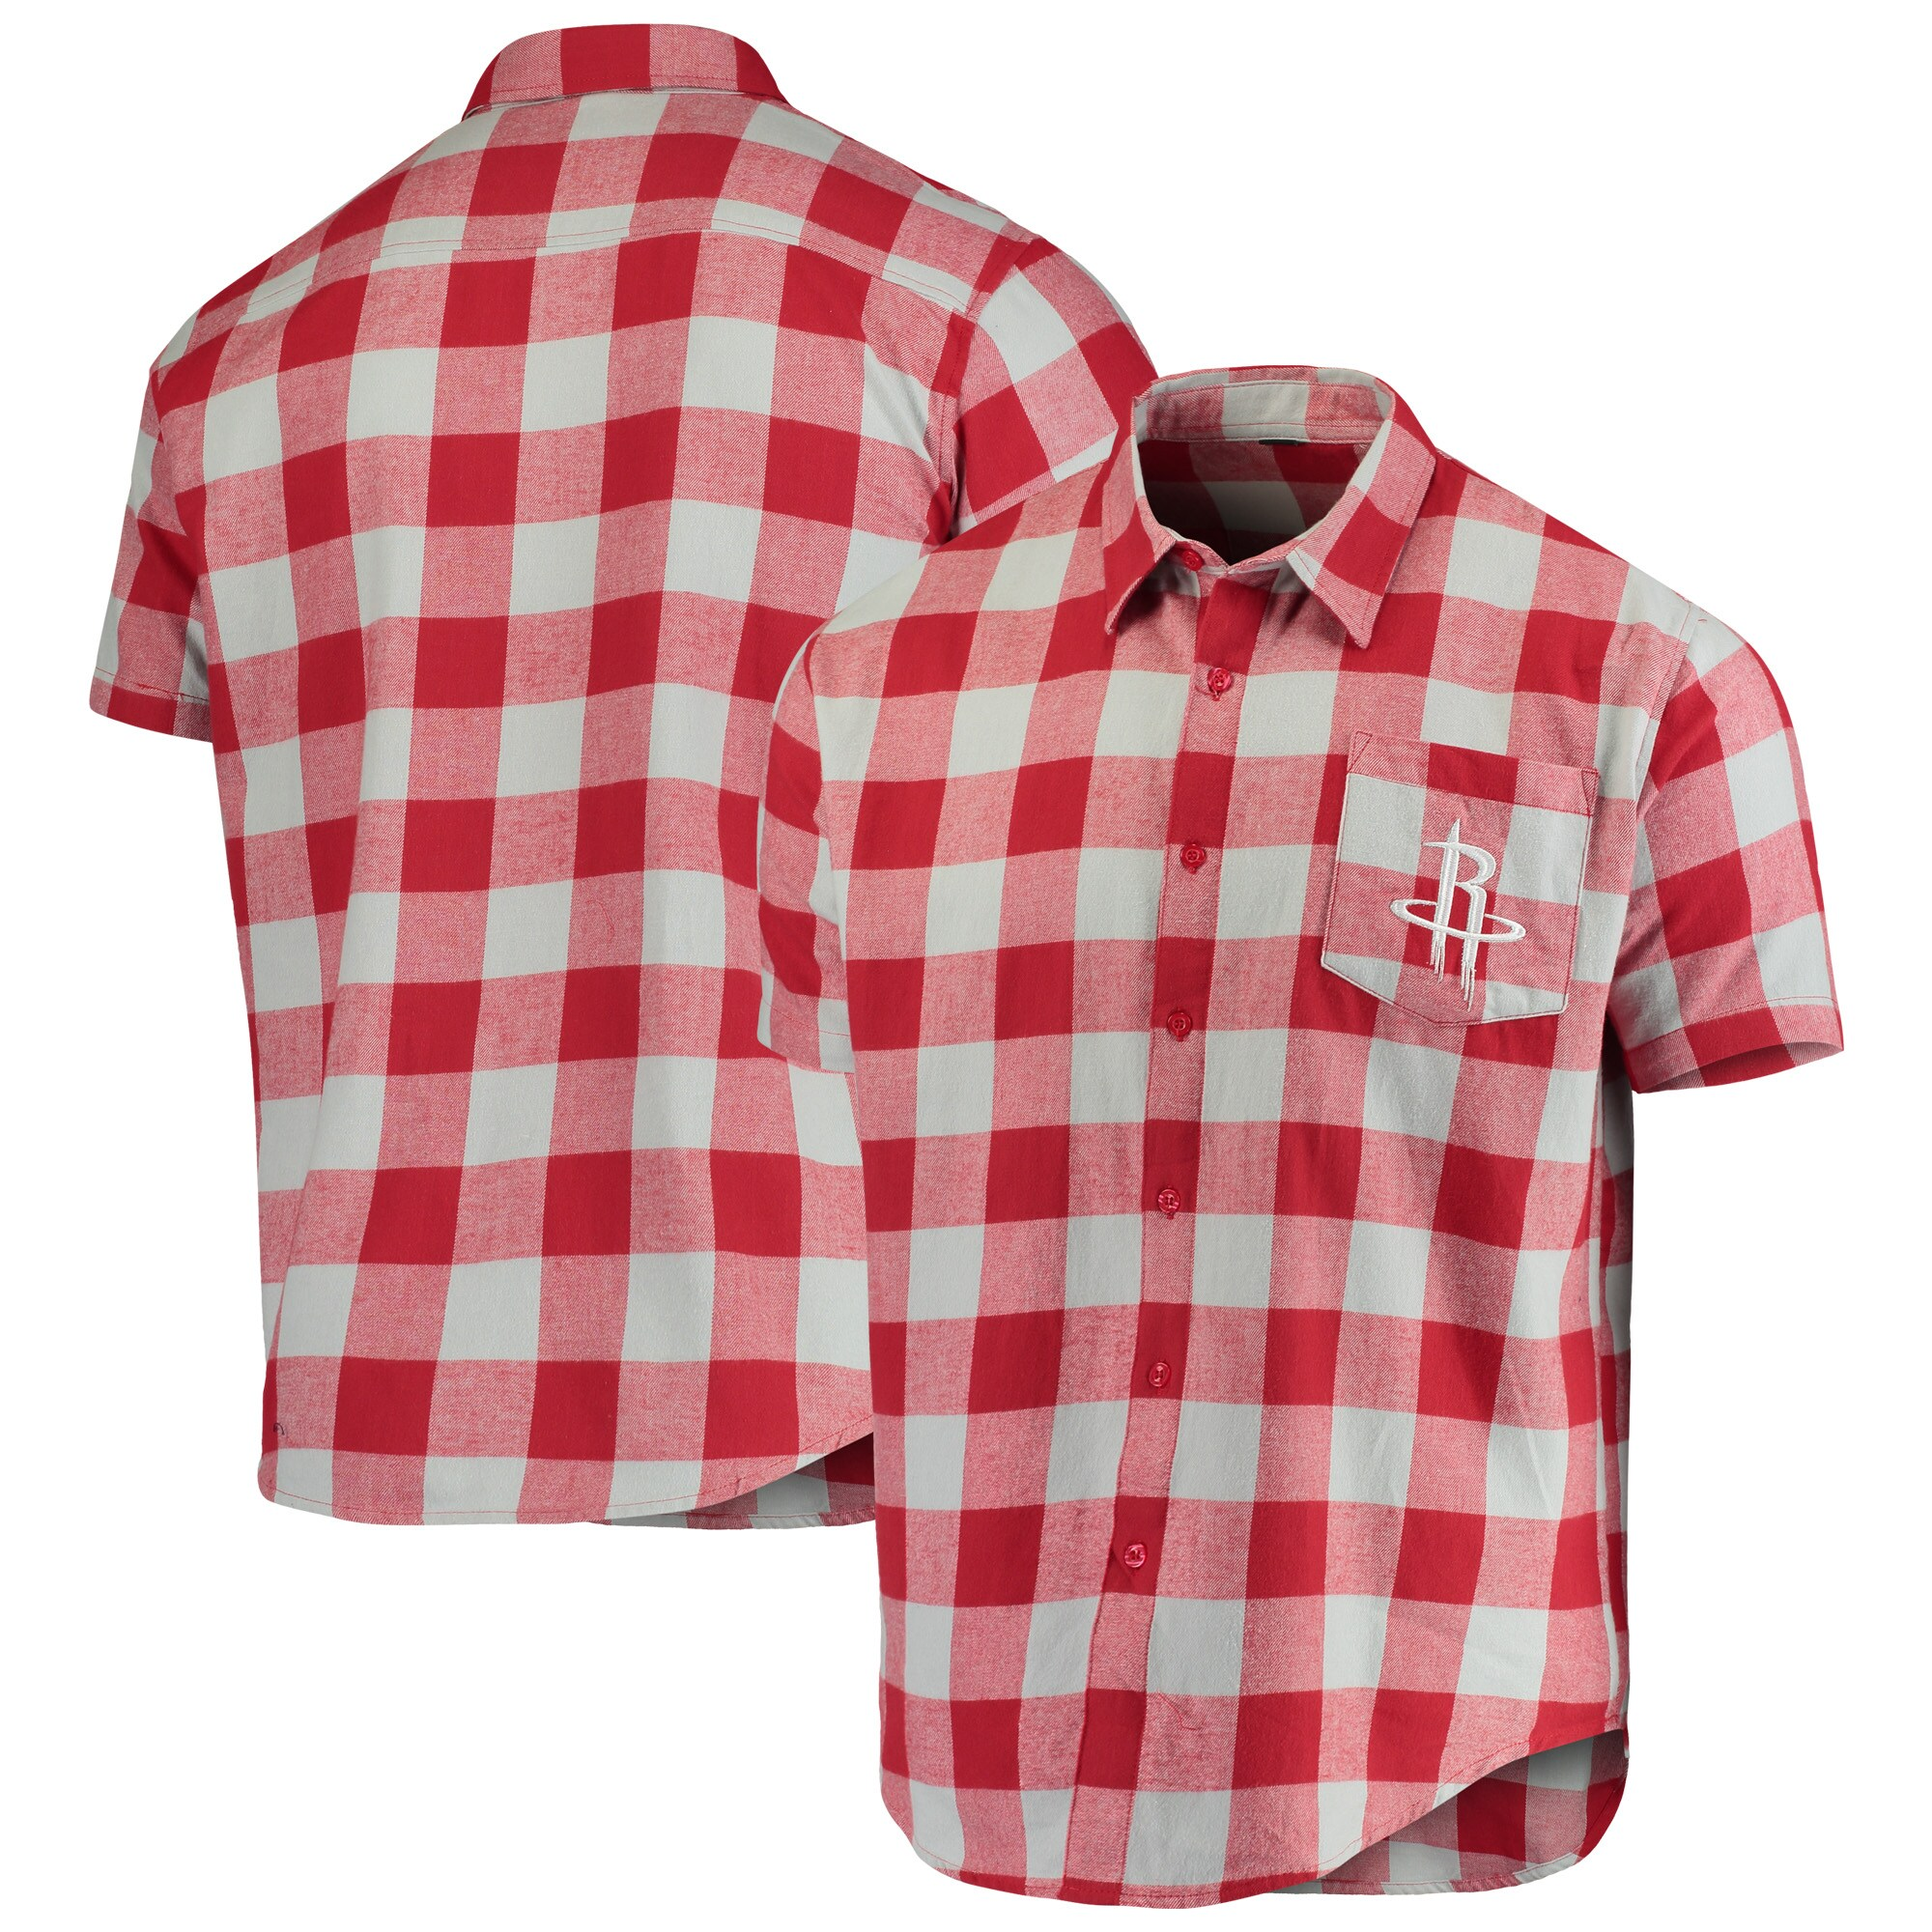 Houston Rockets Big Checker Plaid Flannel Short Sleeve Button-Up Shirt - Red